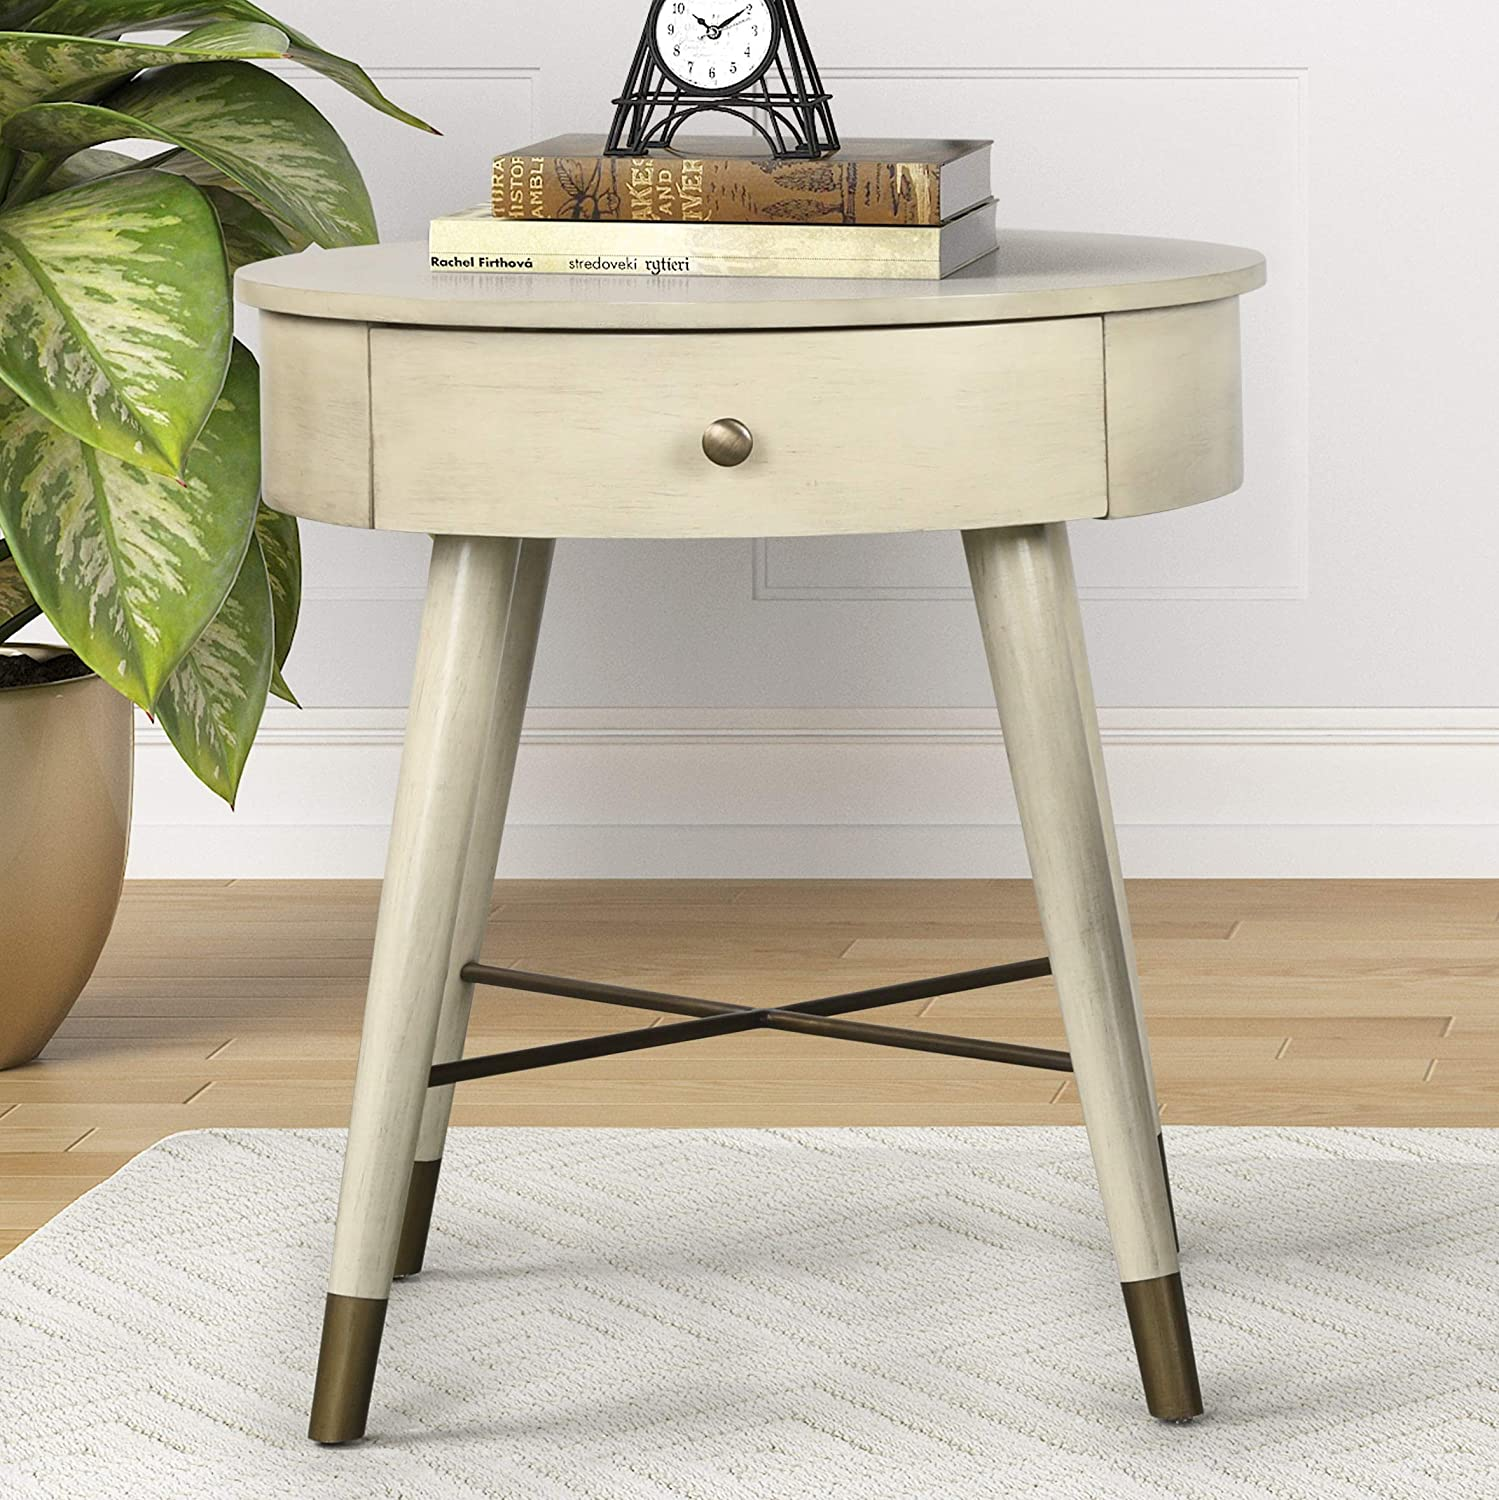 Roundhill Furniture Velsen Mid-Century Modern Wood and Metal End Table with Drawer, Antique White